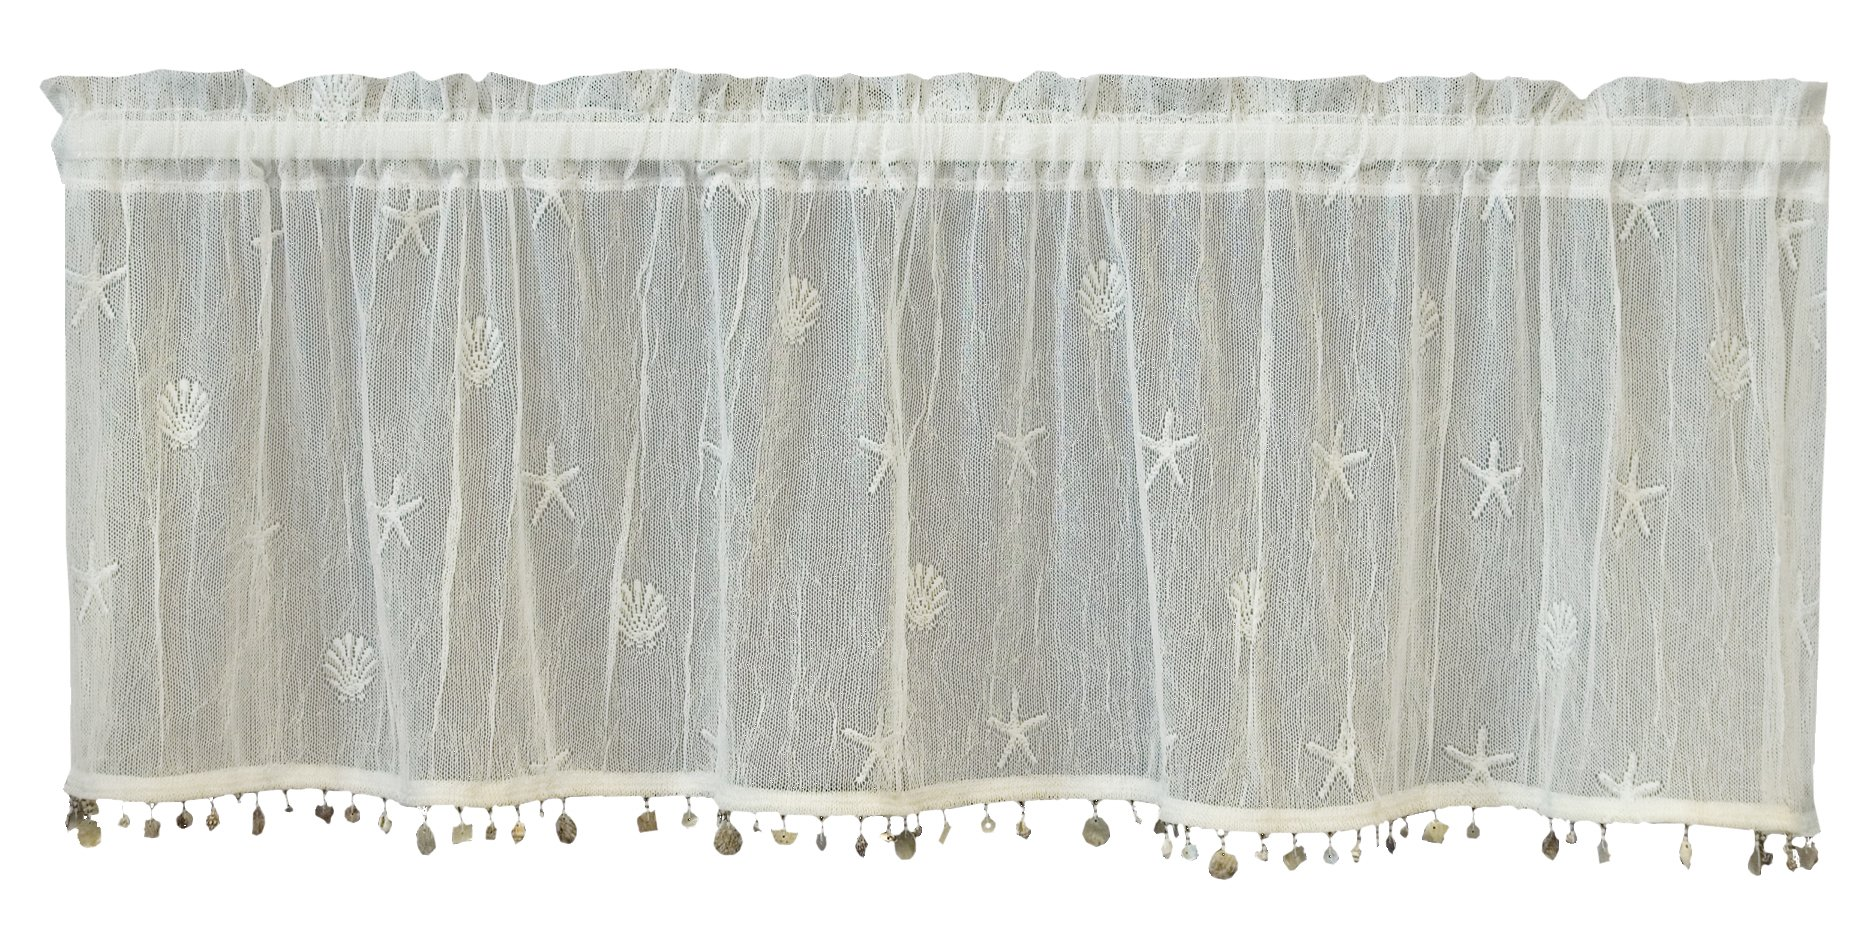 Heritage Lace Sand Shell Valance with Trim, 45 by 15-Inch, White by Heritage Lace